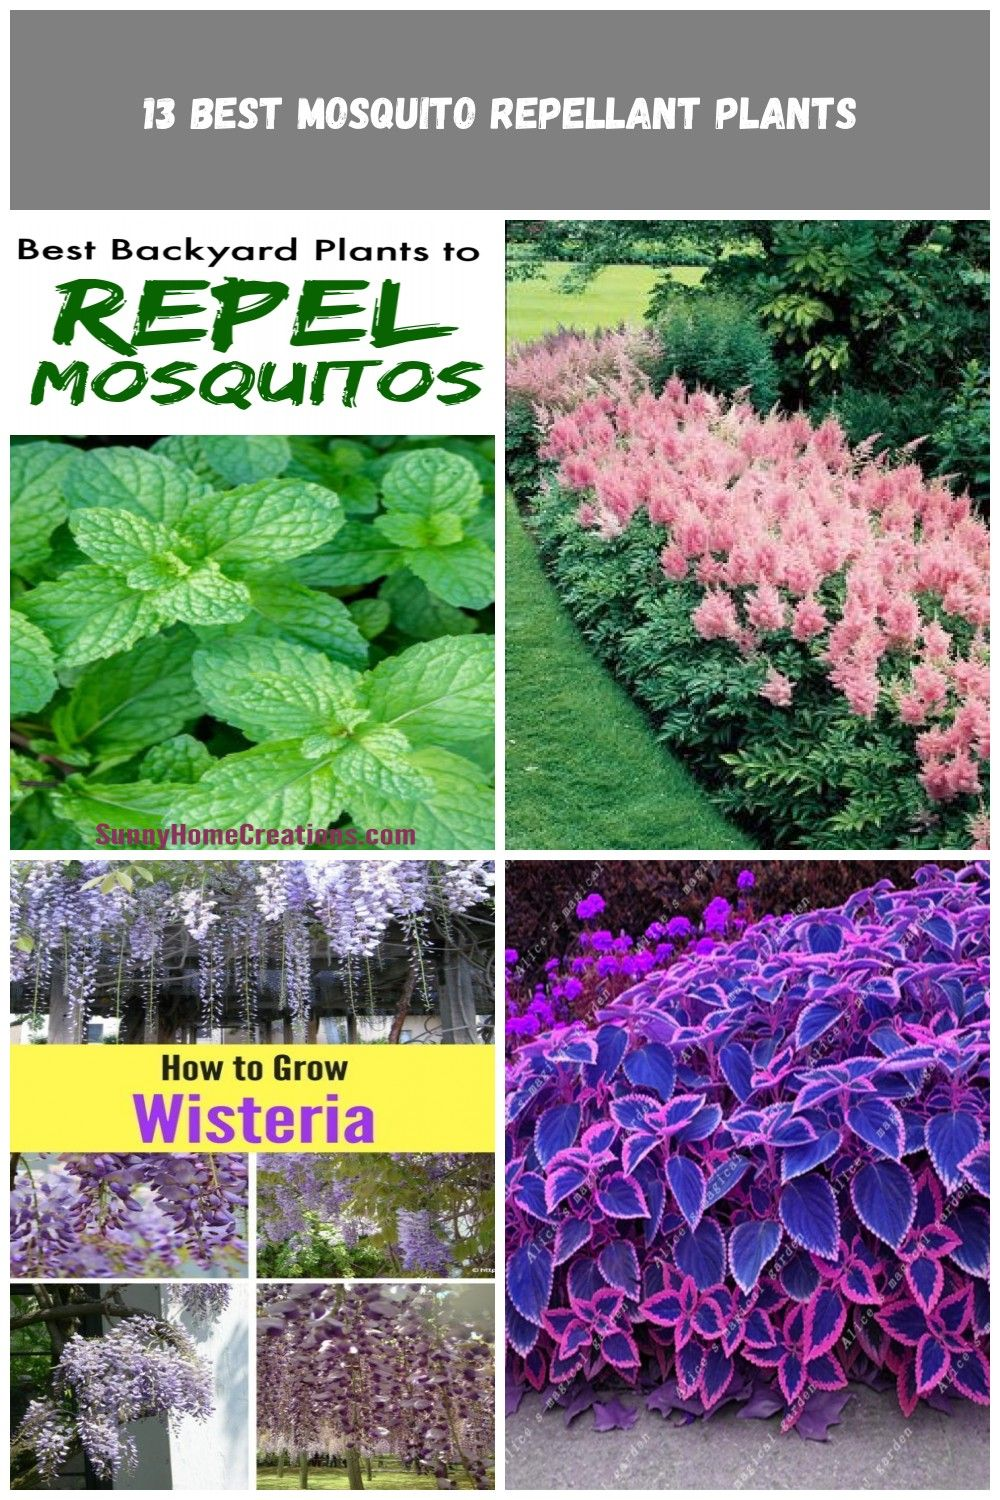 Plant these herbs, flowers and other plants to repel mosquitos.  These are all great plants to add to your landscape - your front, side or back yard.  #mosquitos #plants #flowers #garden #gardening flowers garden Best Backyard Plant to Repel Mosquitos #mosquitoplants